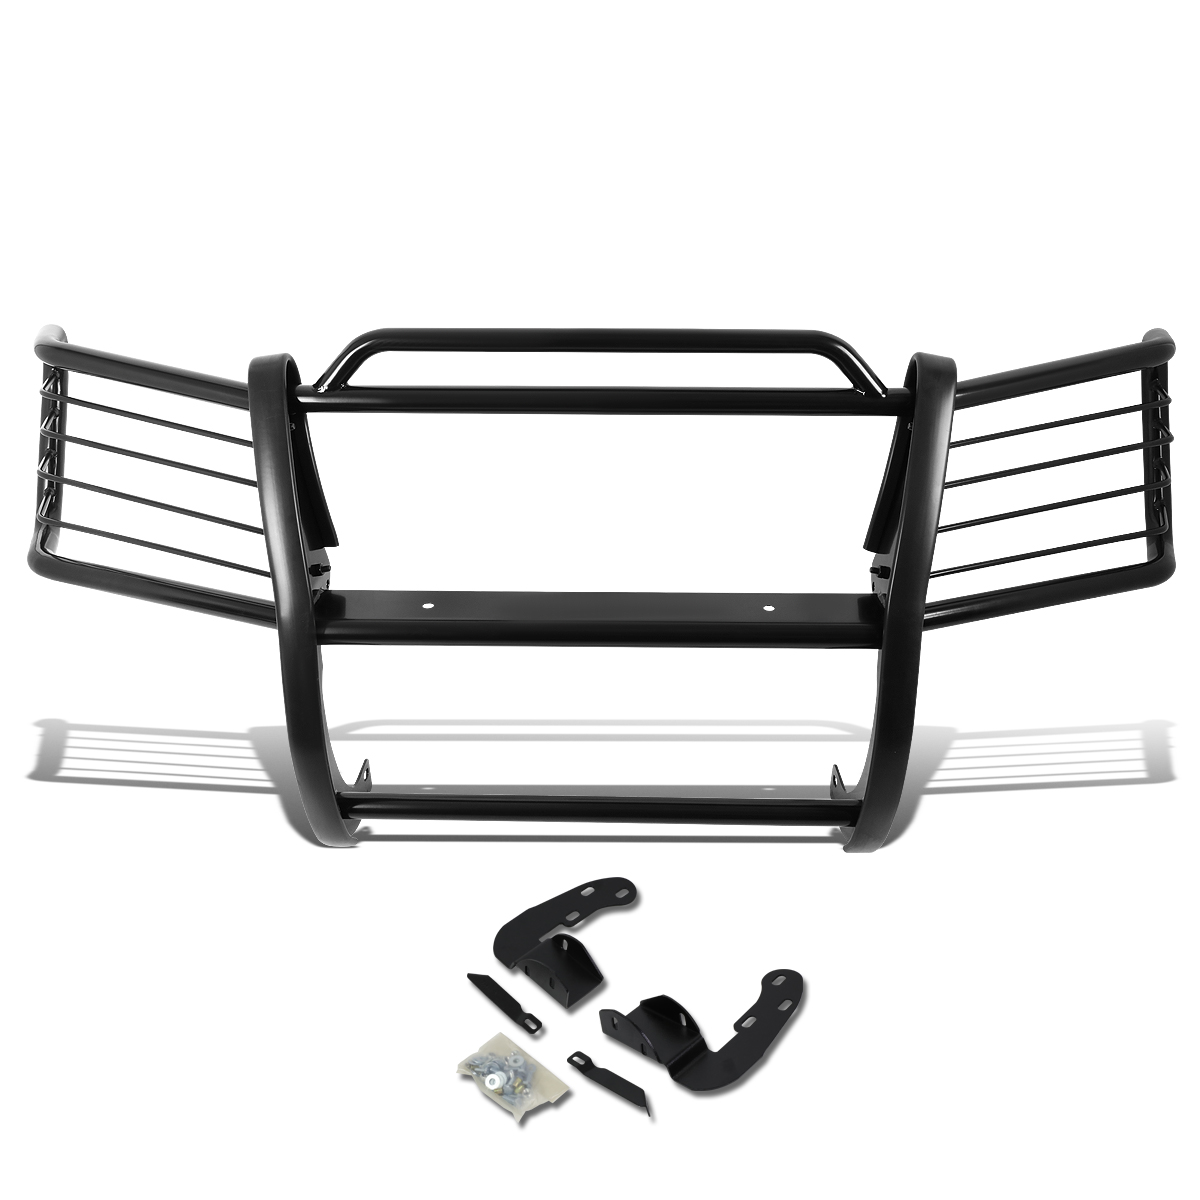 For 02-09 Chevy Trailblazer EXT Front Bumper Protector Br...